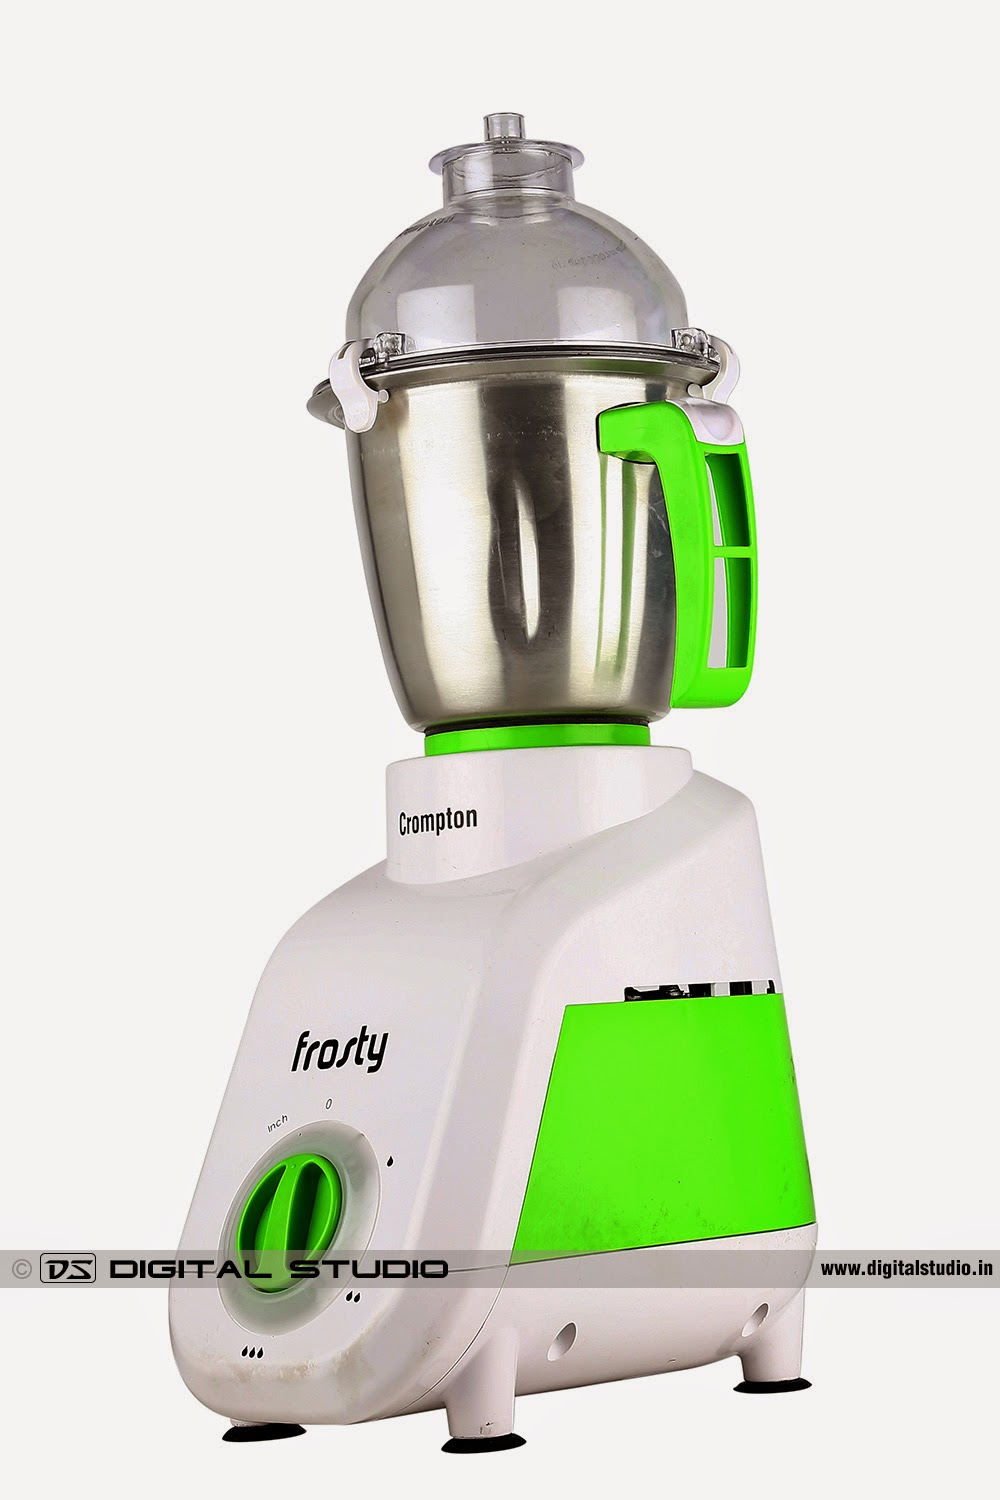 Photograph of mixer grinder